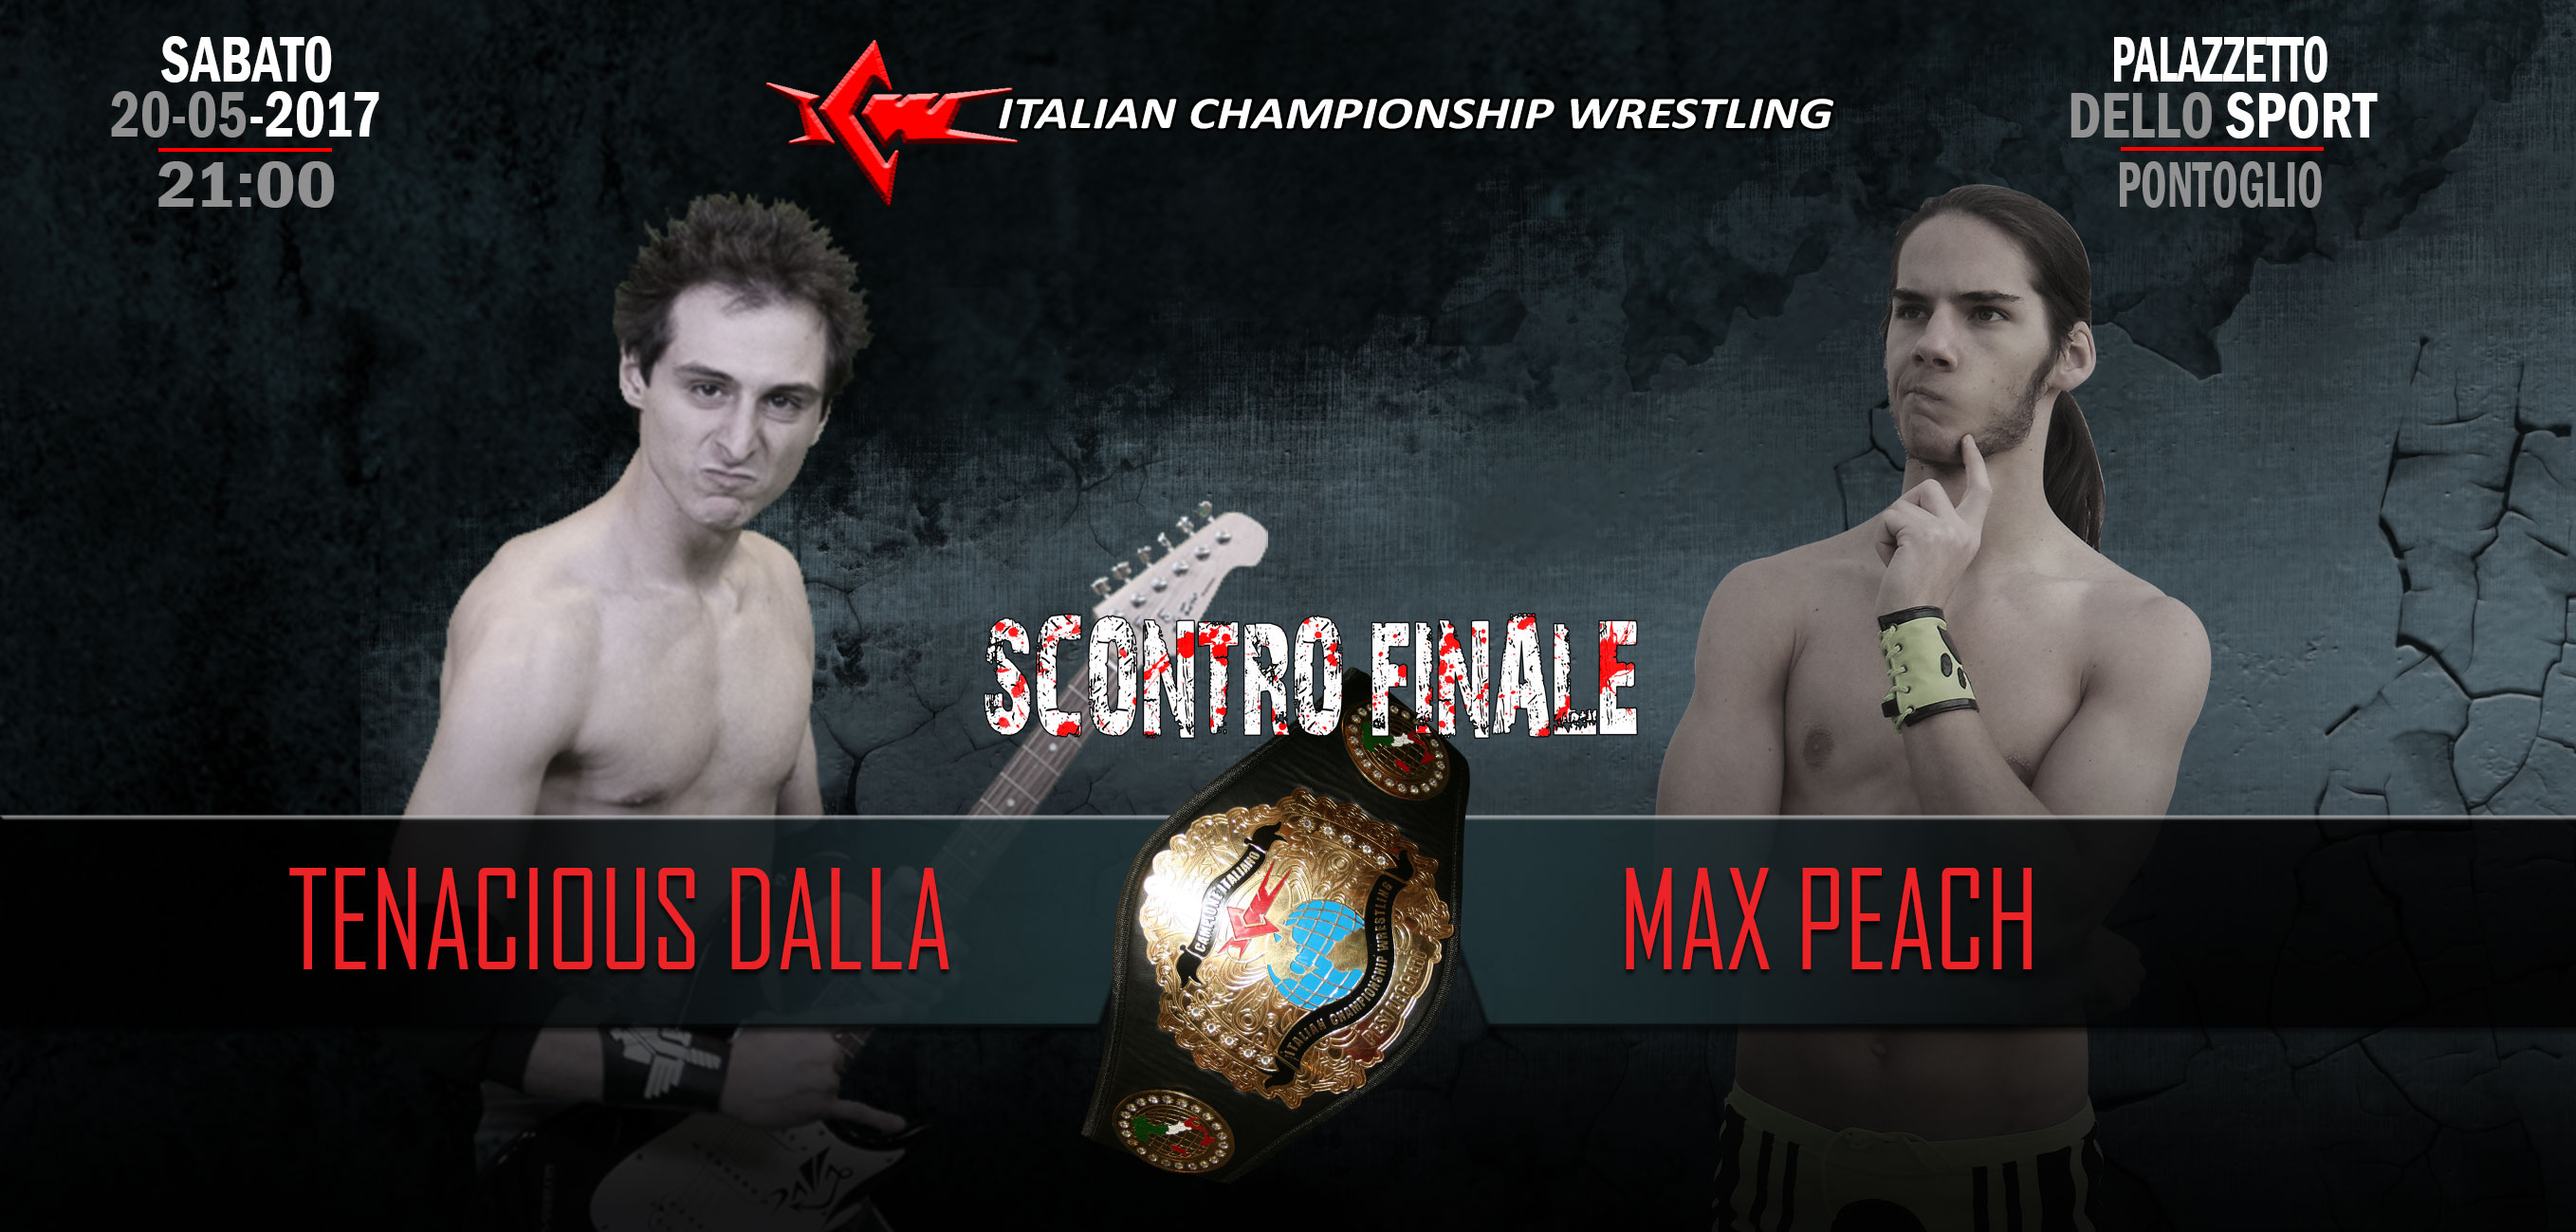 [VIDEO] Max Peach vs Tenacious Dalla: lo Scontro Finale